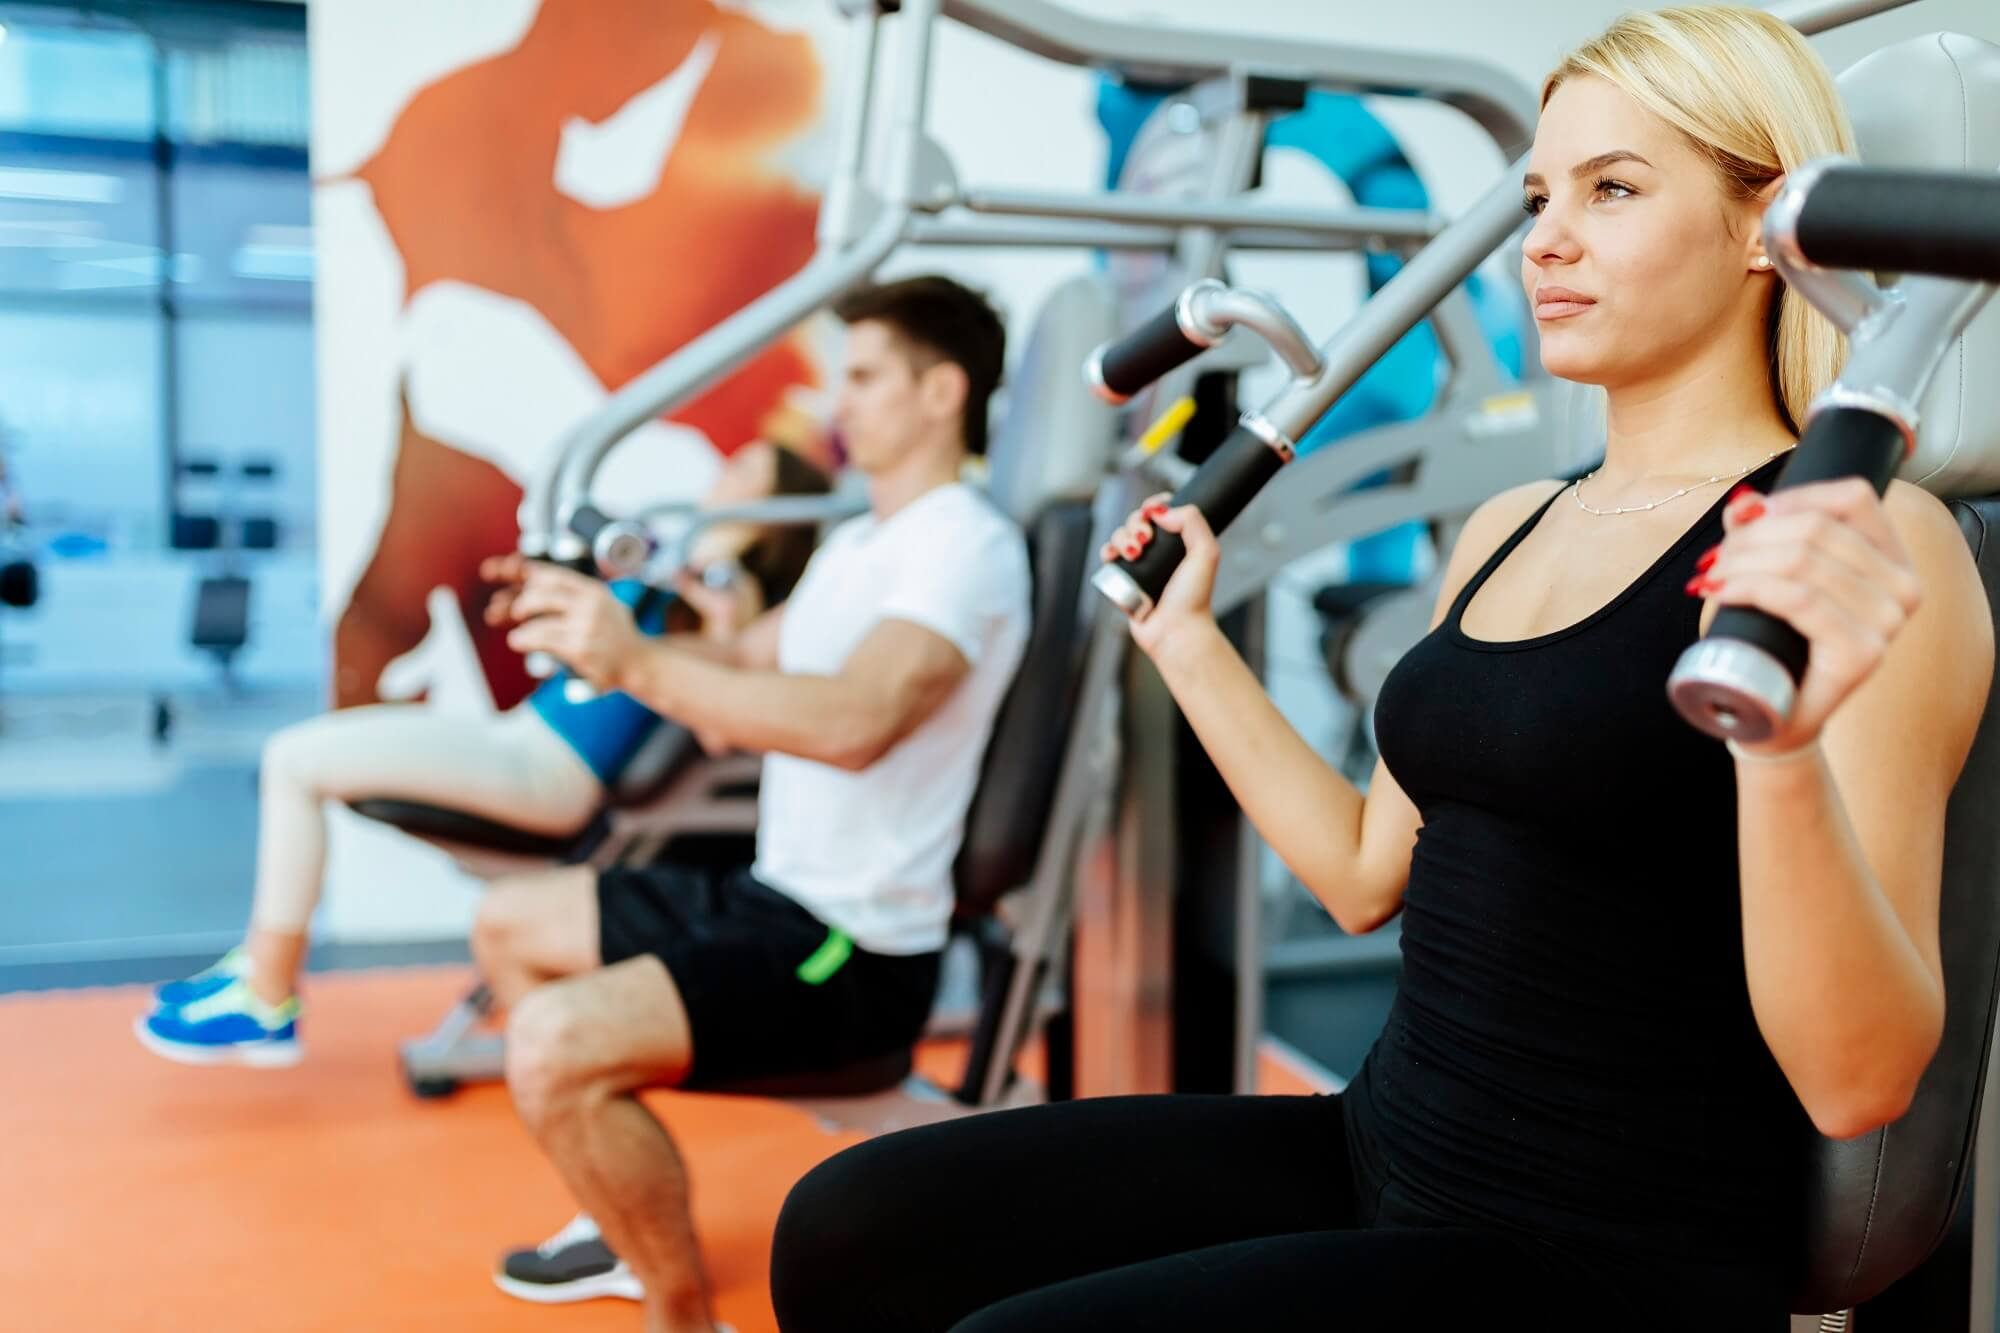 People exercising in gym on various machines